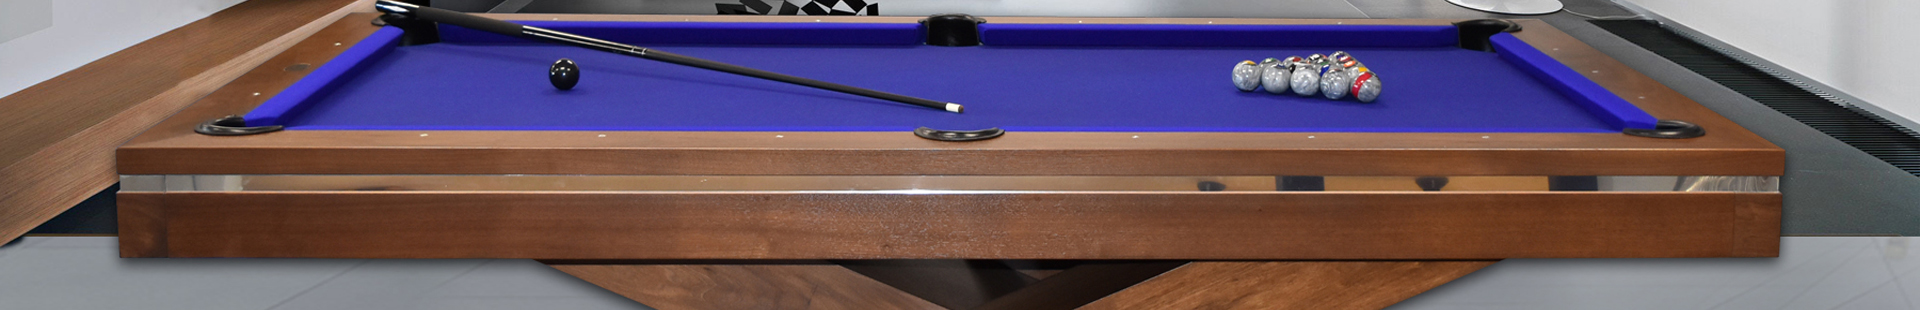 Ultra Pool Tables